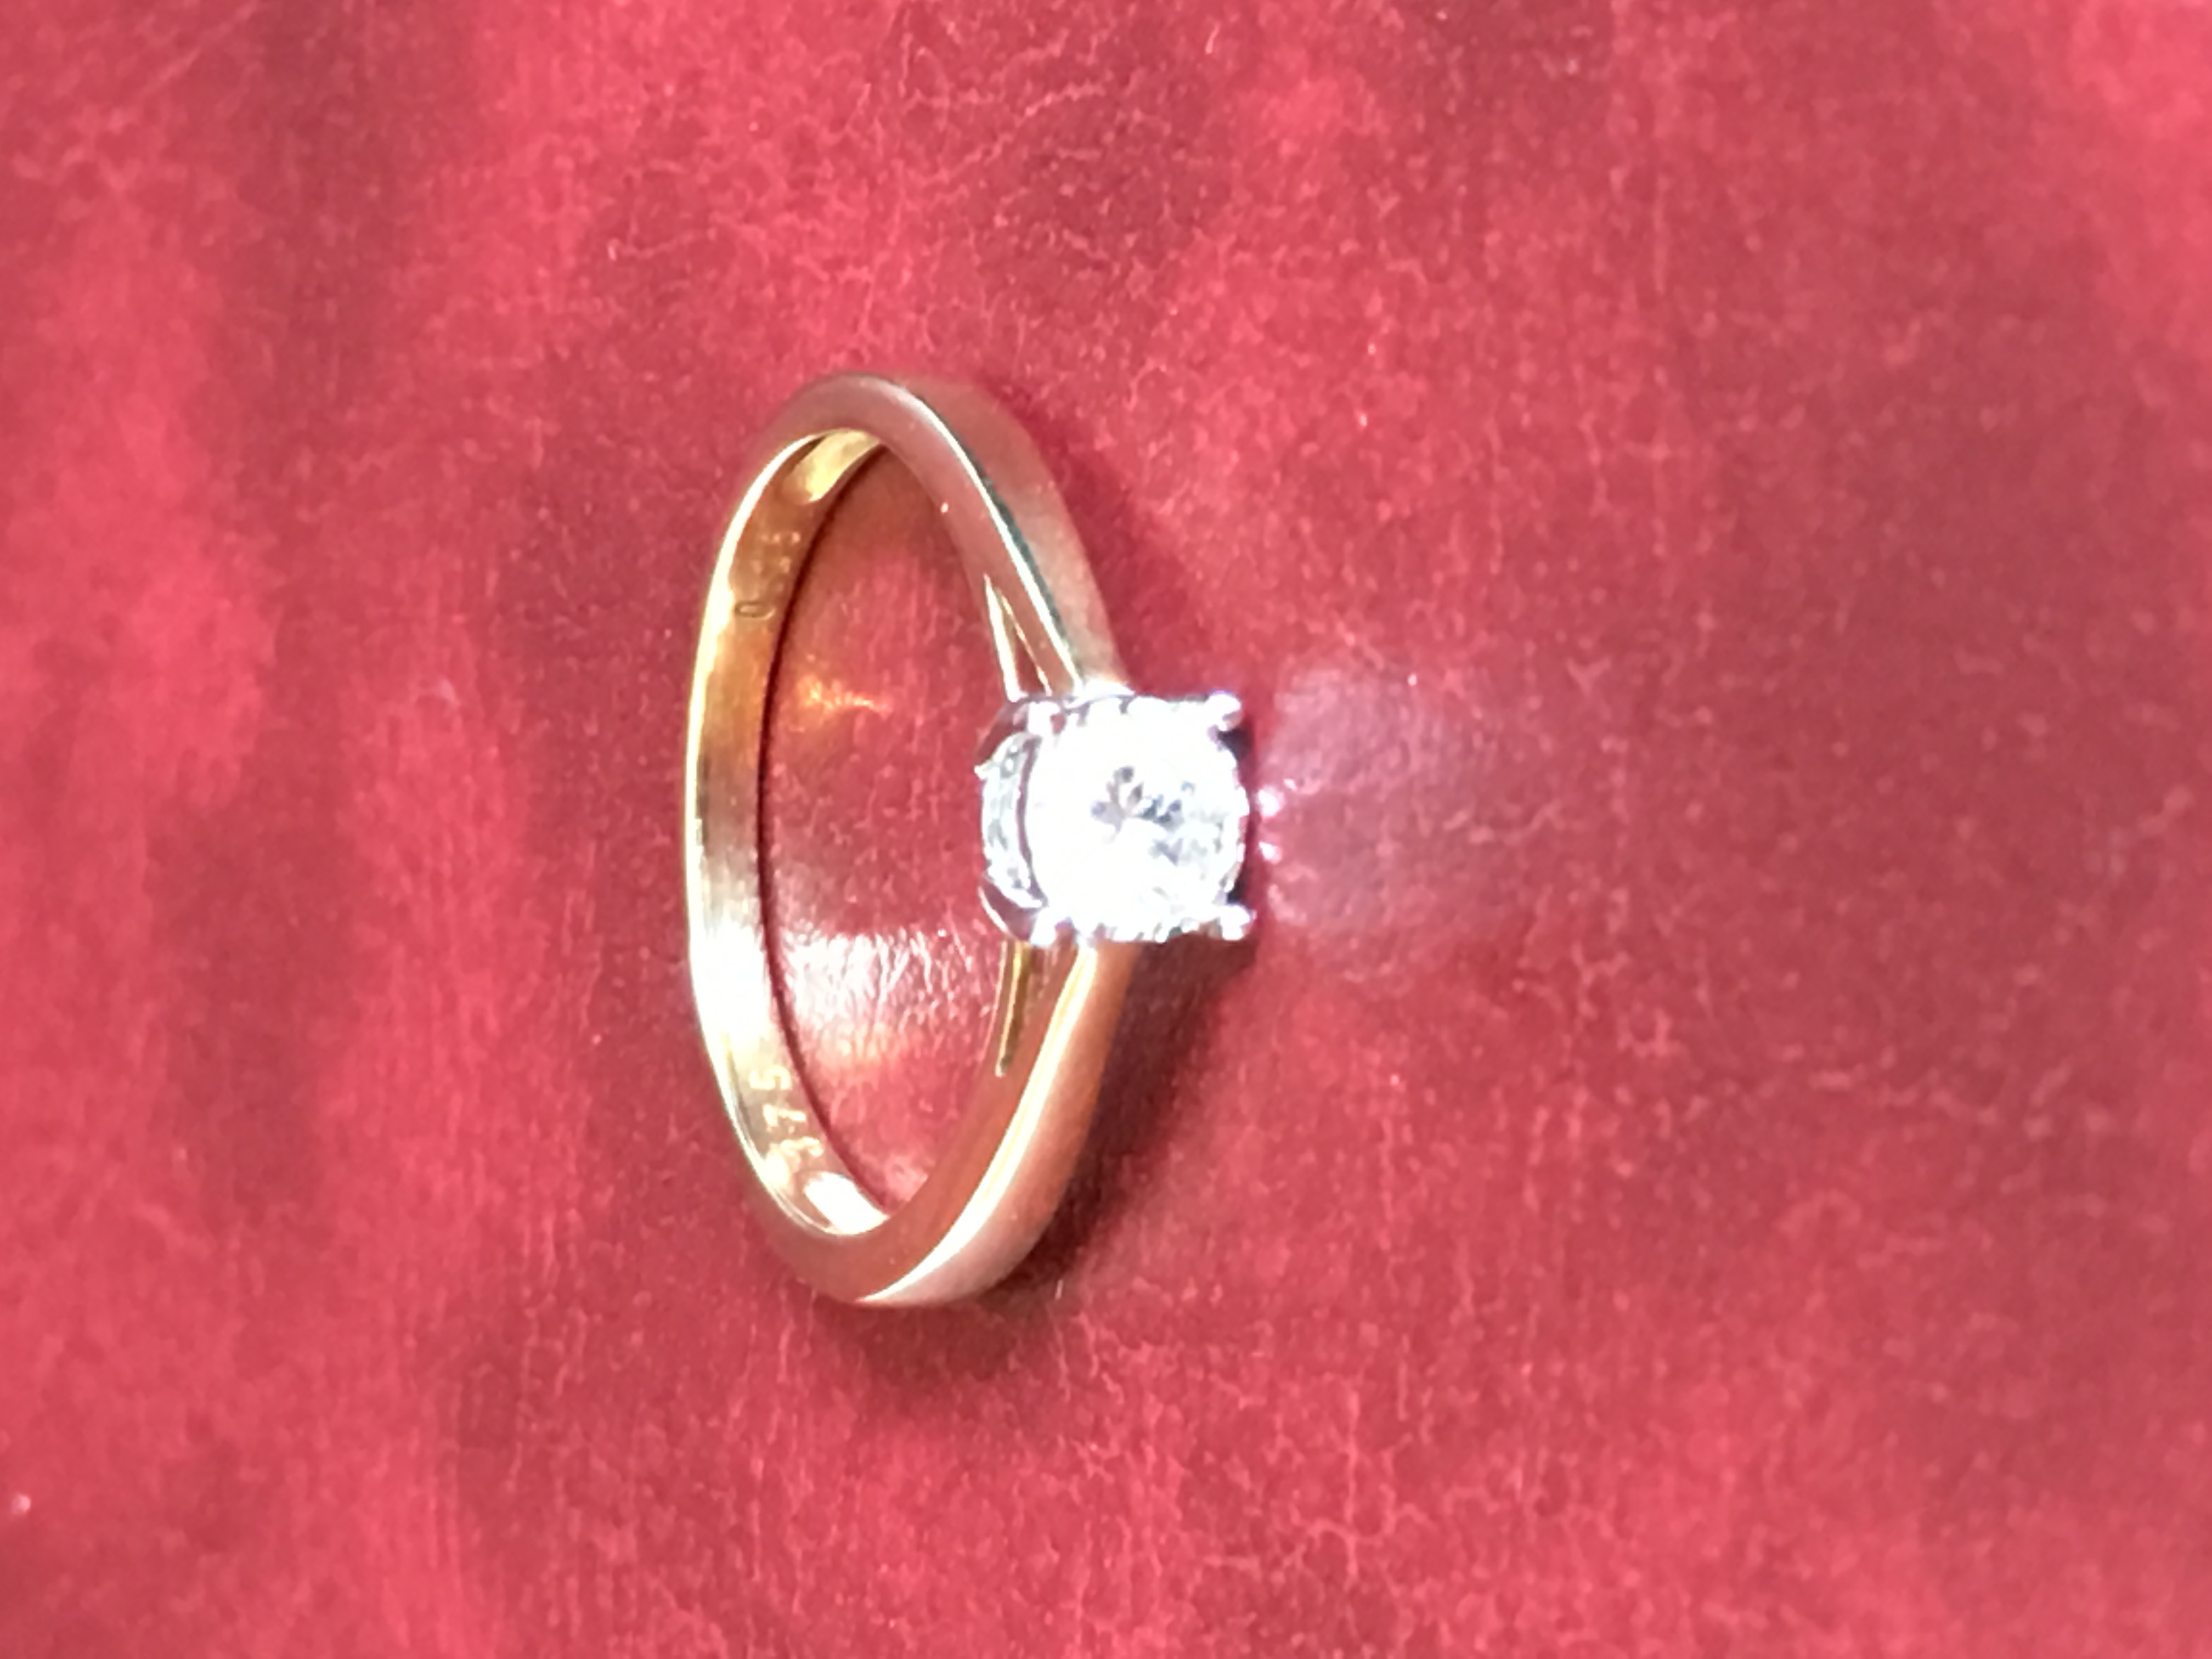 18CT Gold Ring Solitaire Diamond -